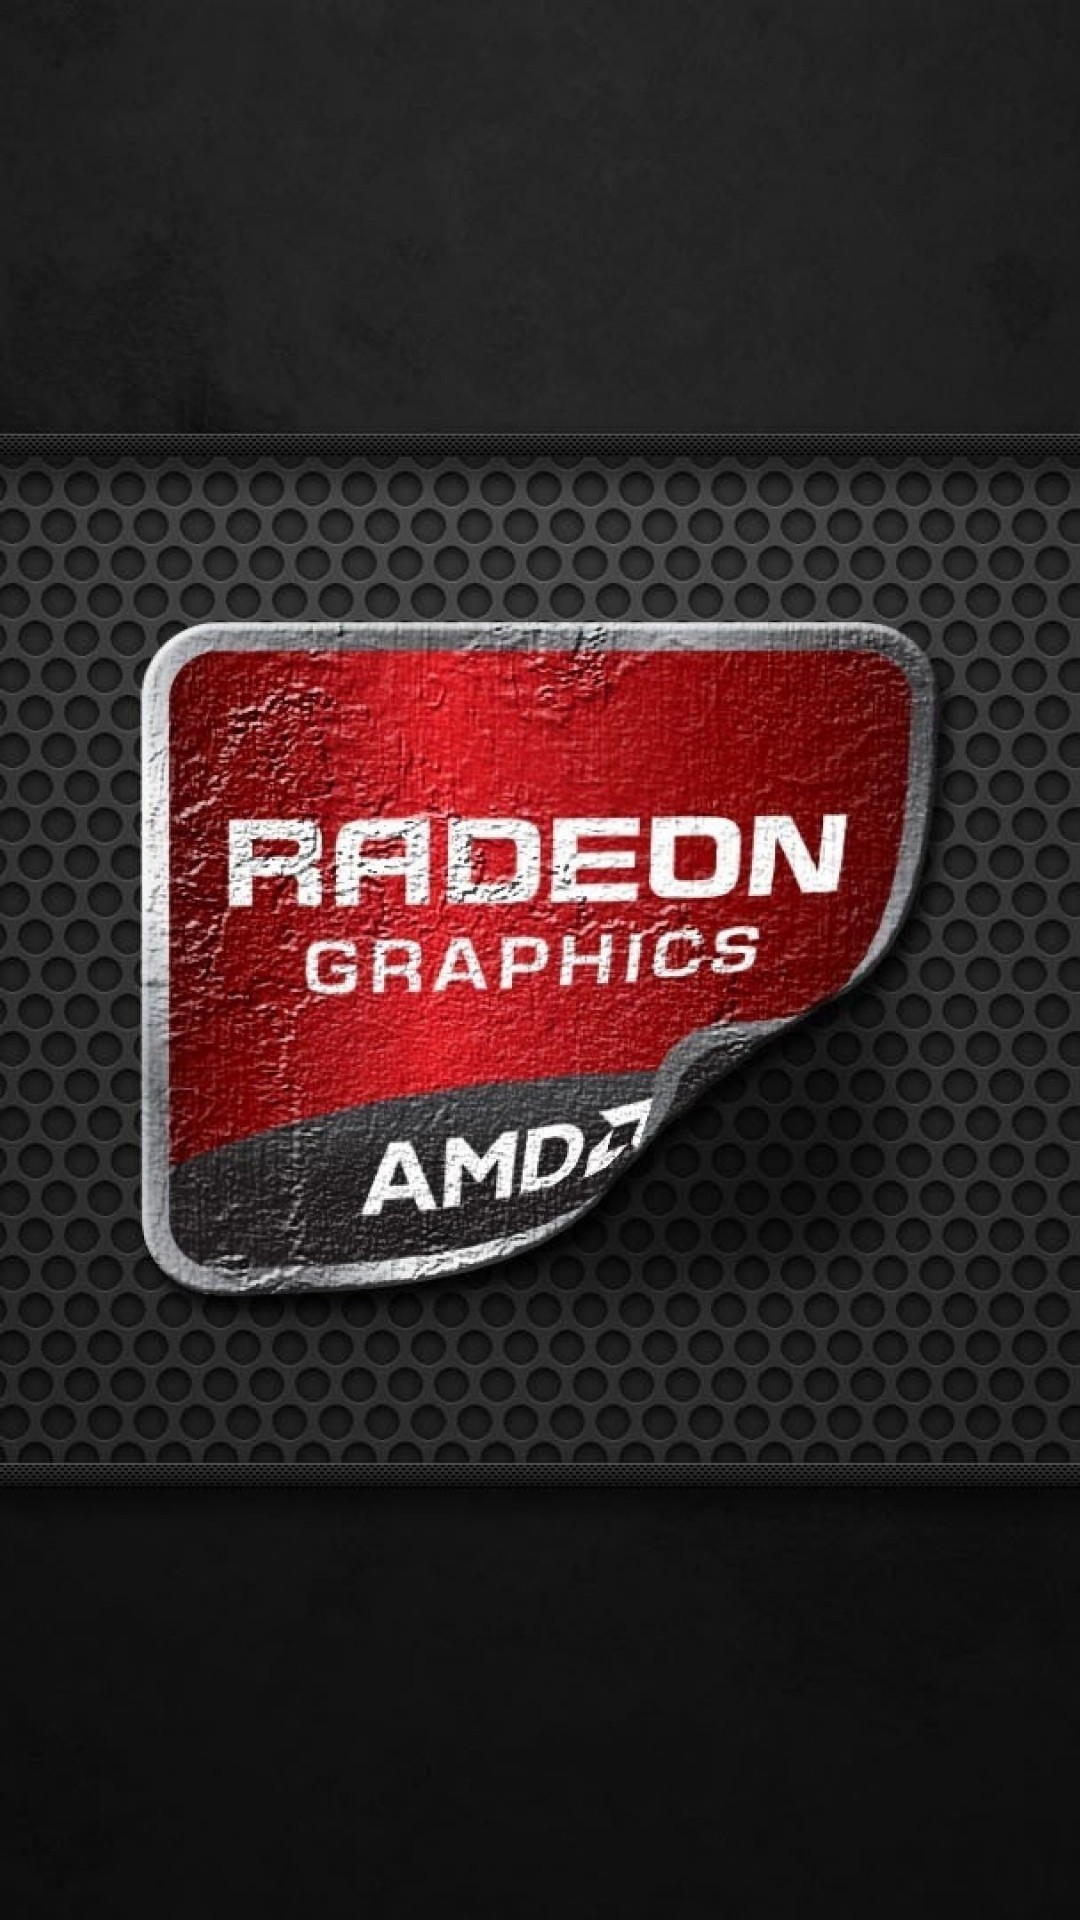 AMD Radeon Graphics Wallpaper for HTC One